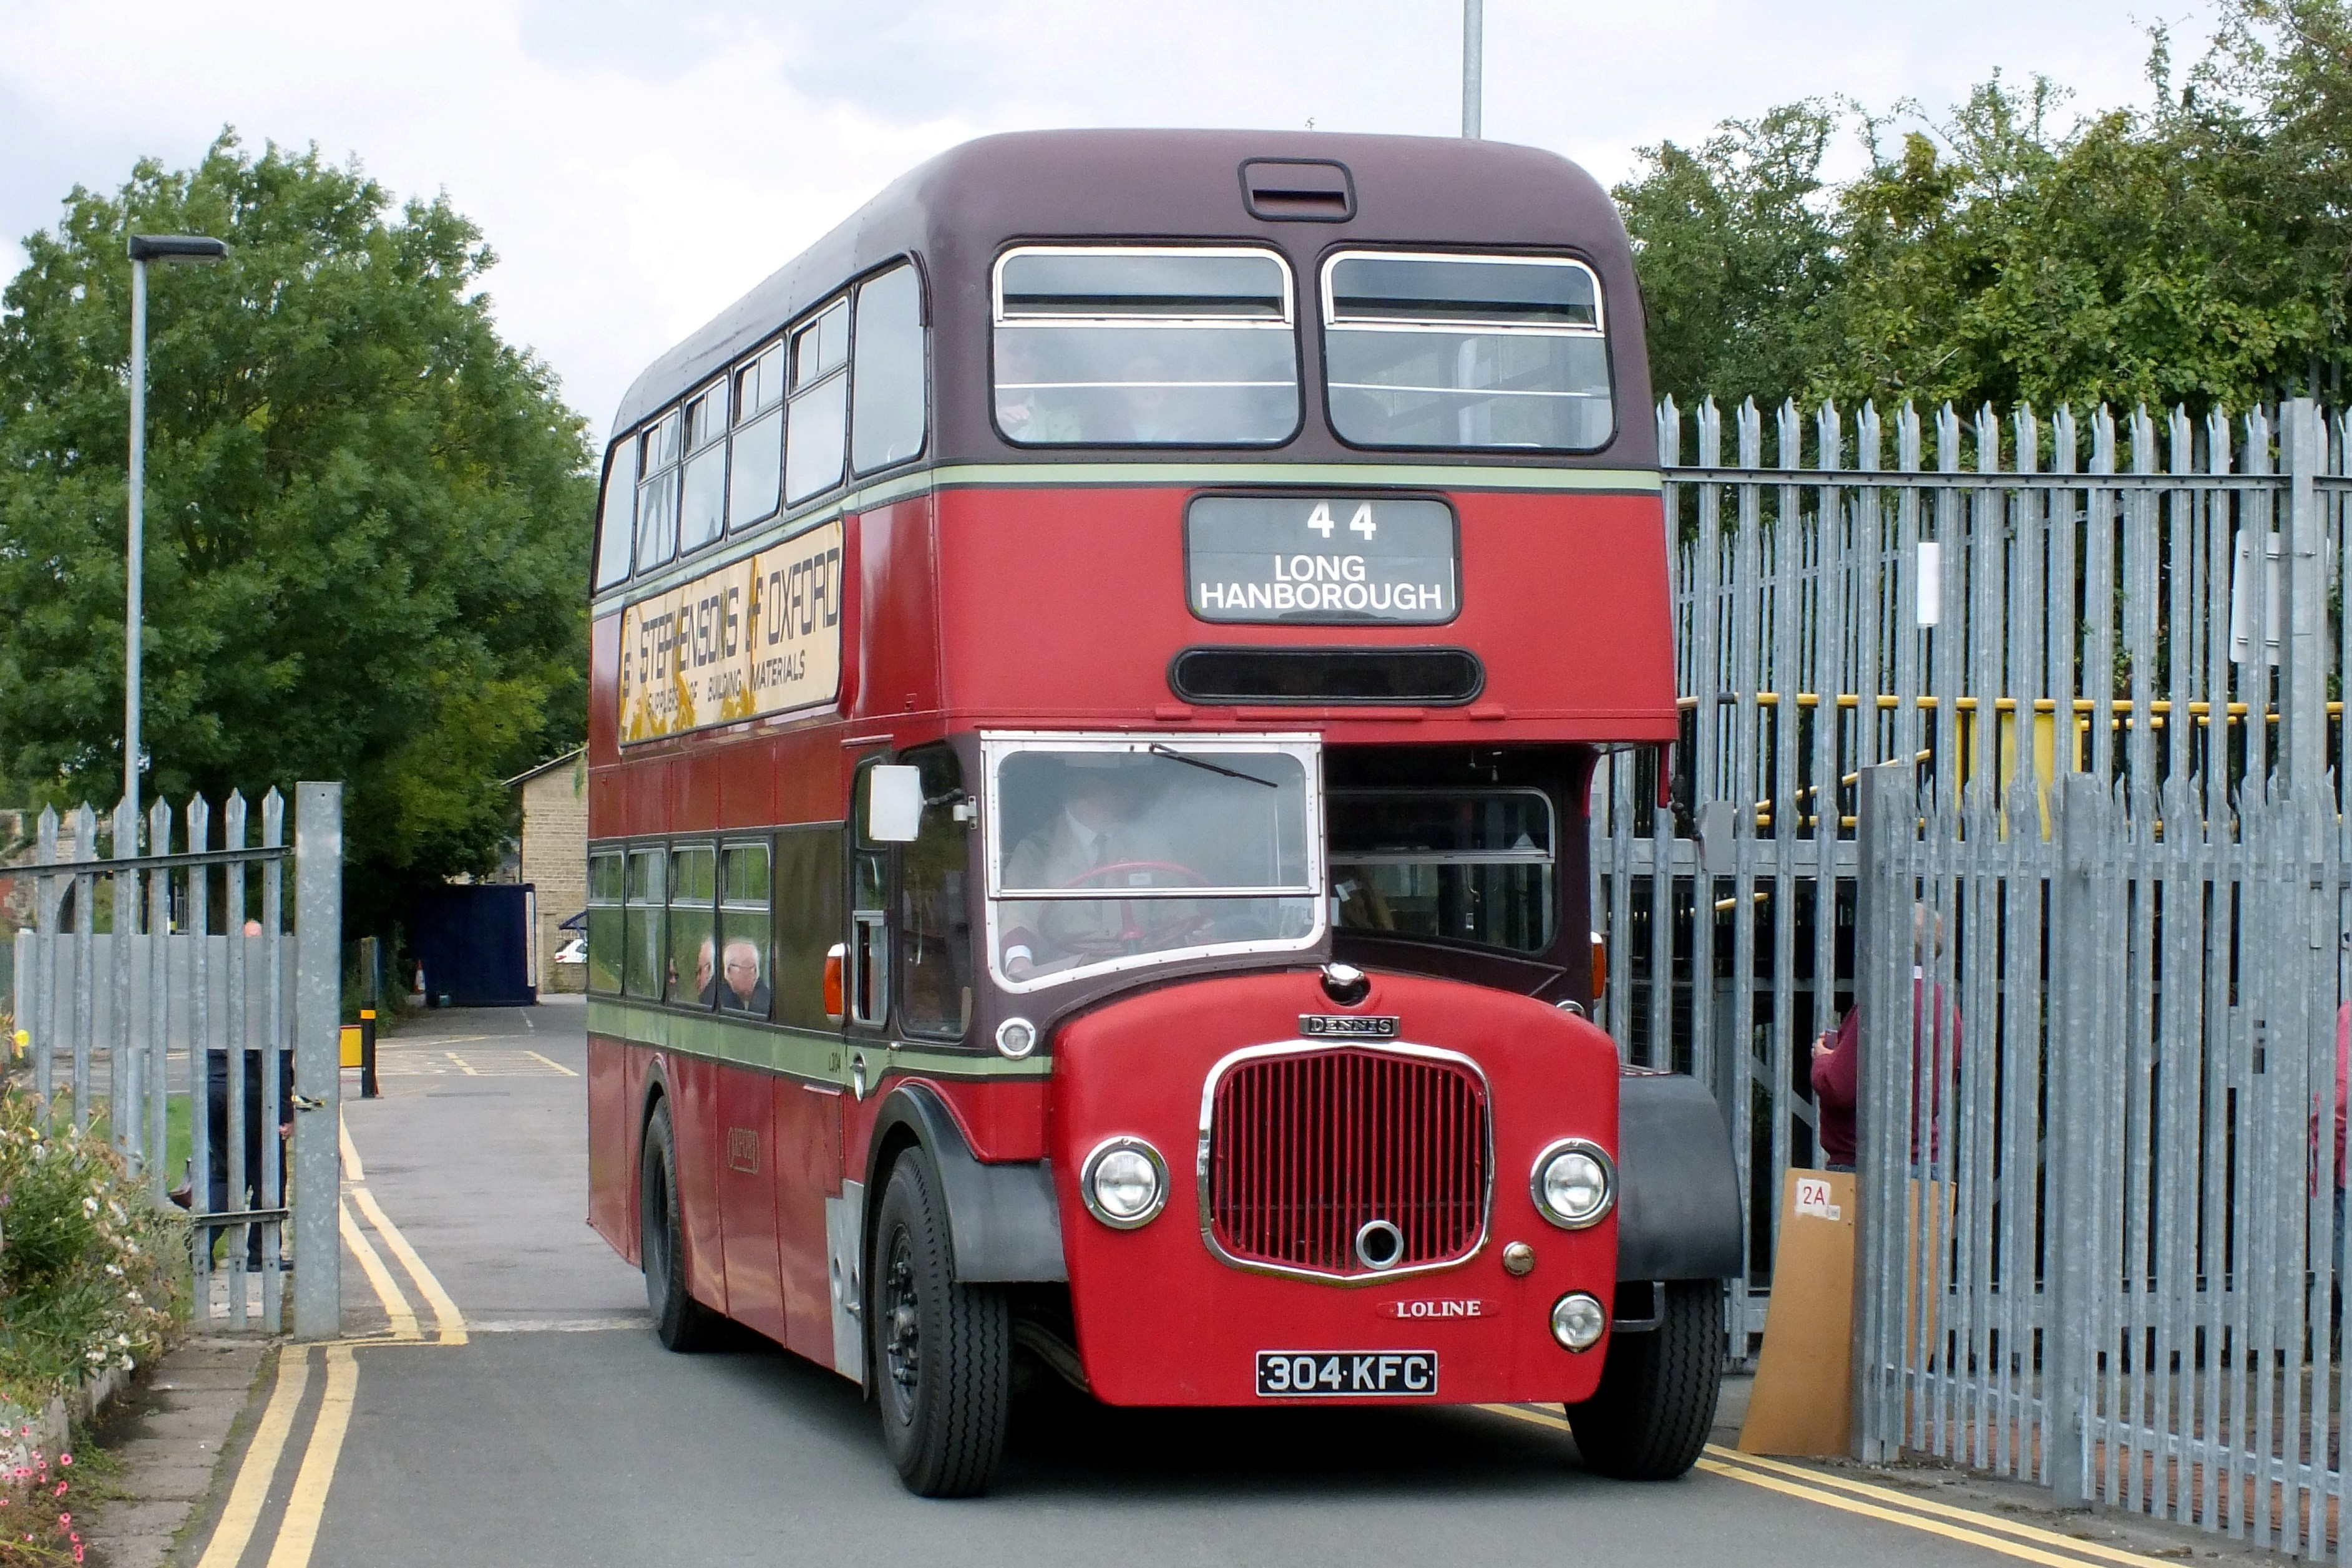 30 July 2017 Oxford Bus Museum, Hanborough 112.jpg